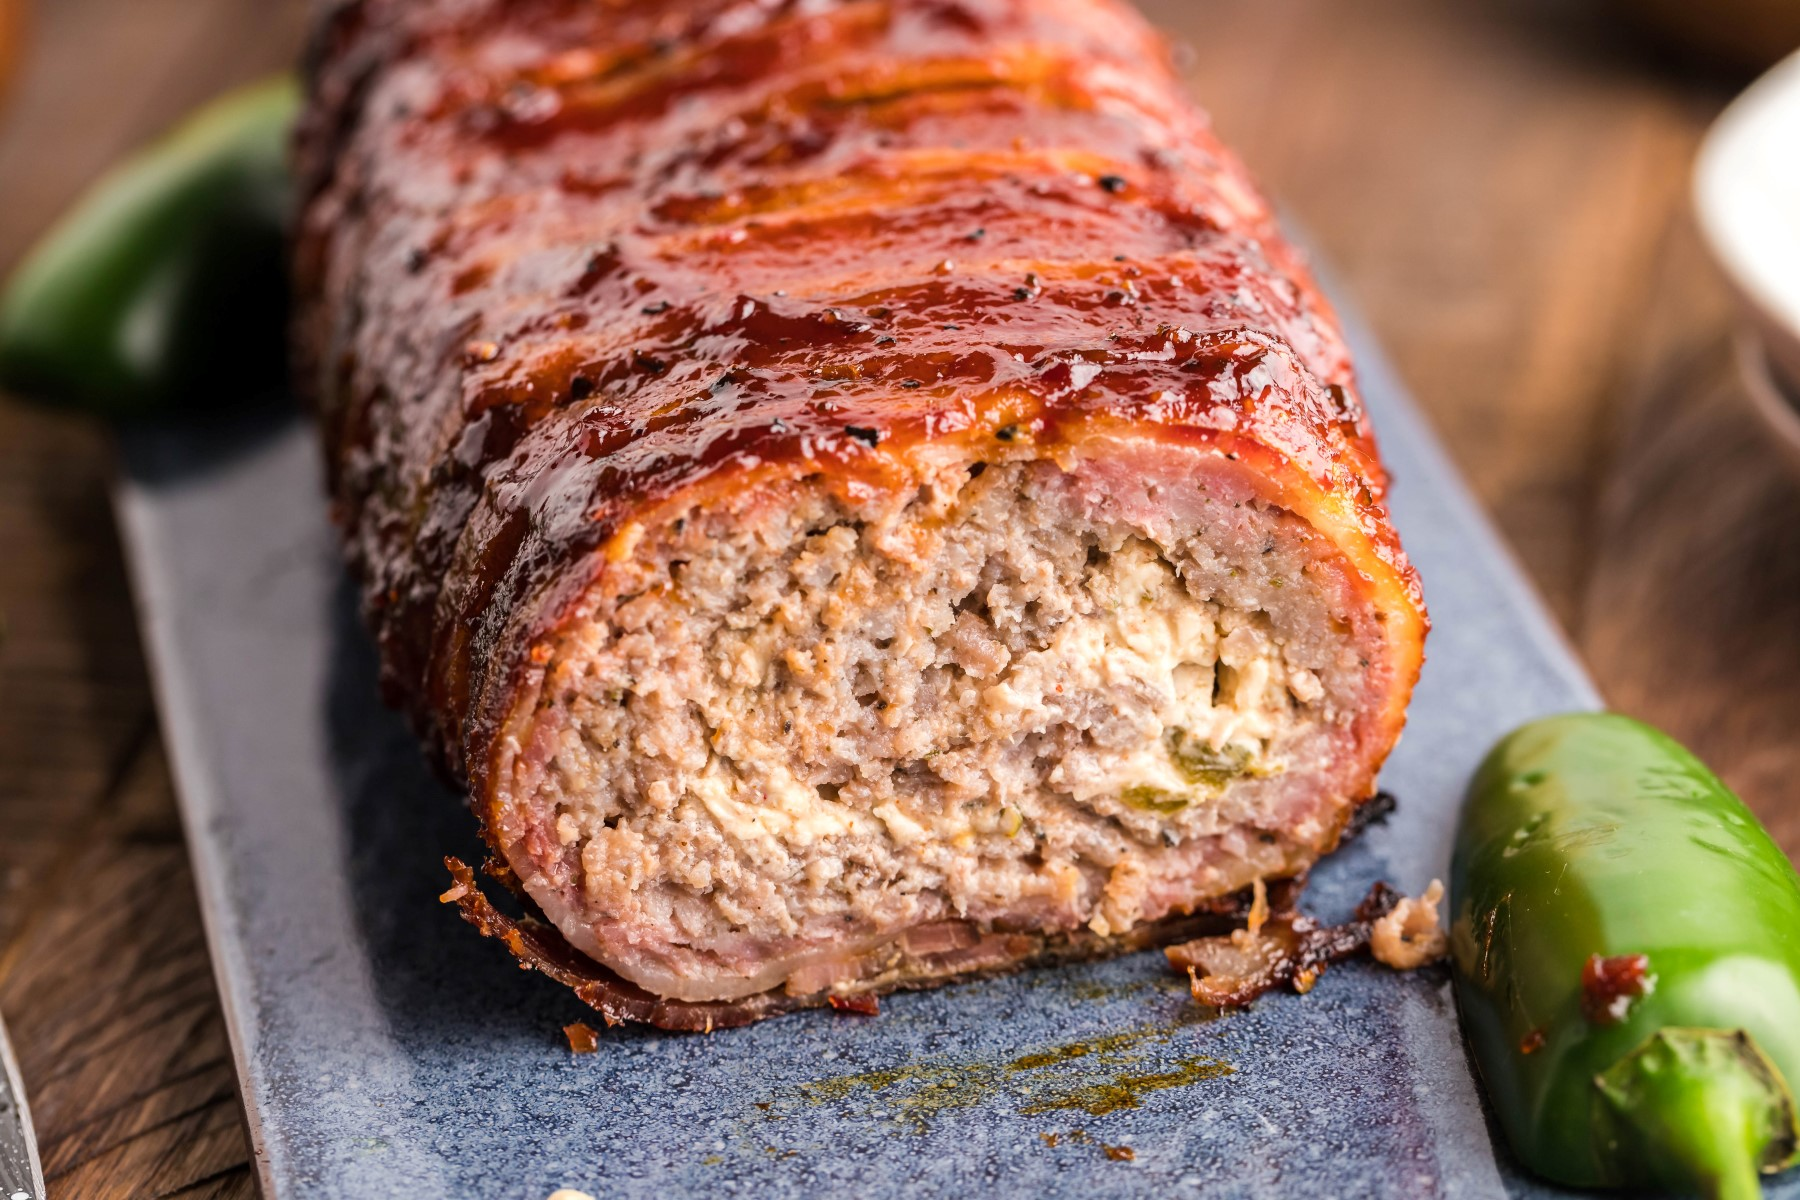 Bacon wrapped sausage roll with the end cut off sitting on a cutting board with a whole jalapeno on the board